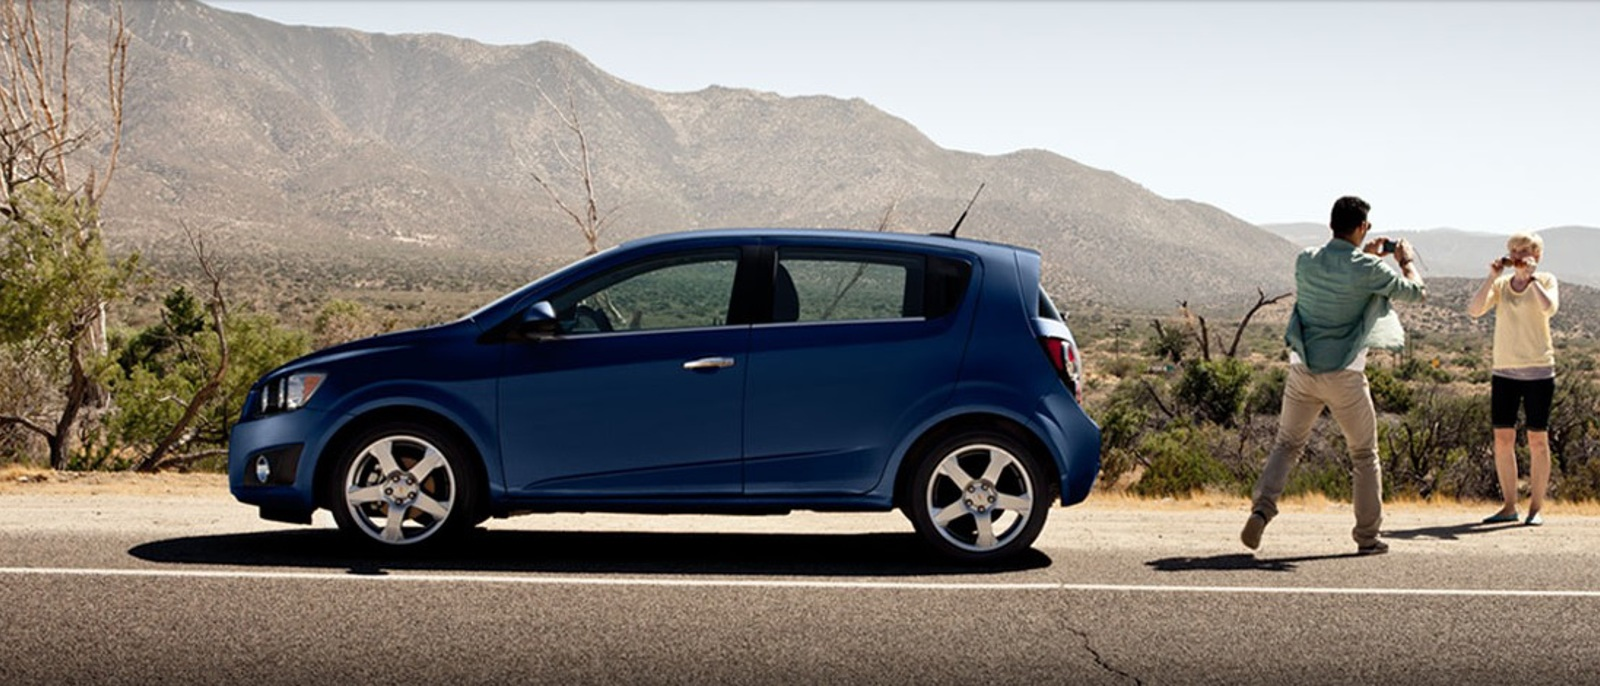 2012 Chevy Sonic Hatchback Blue Profile1